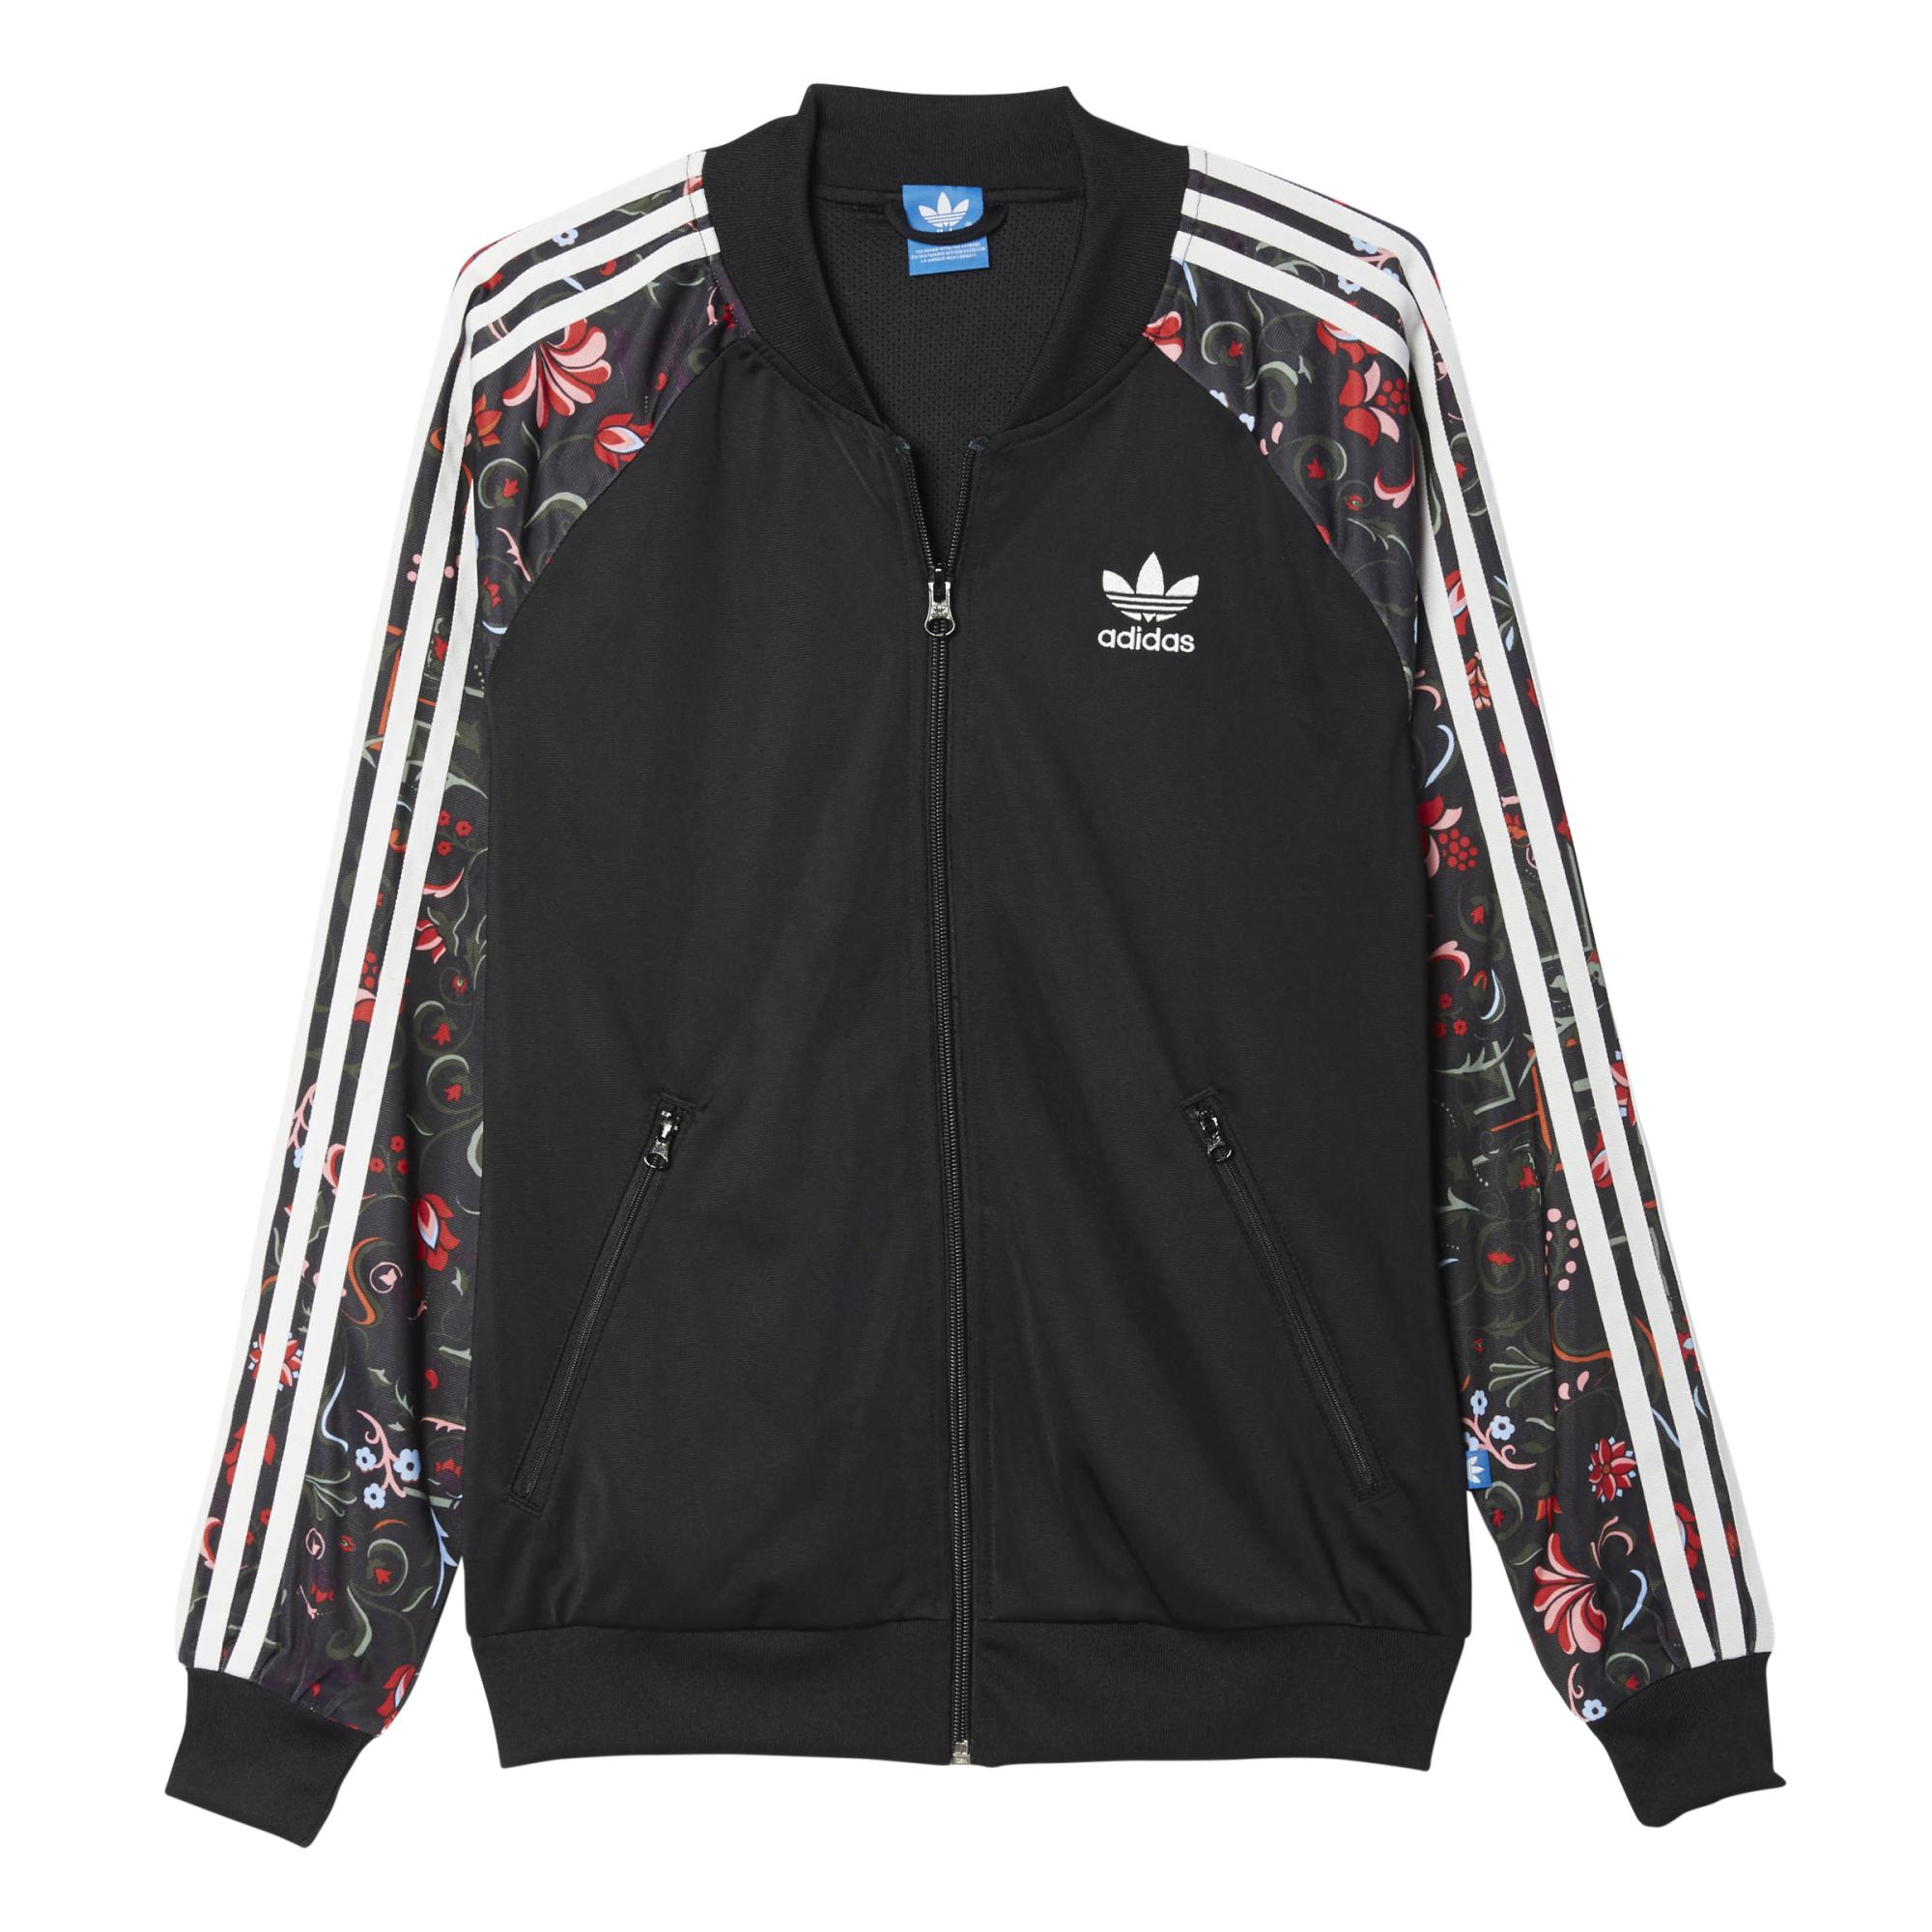 00d5860c3b4 Adidas Originals Mujer Chaqueta Superstar TT Printed Flower  (negro multicolor)